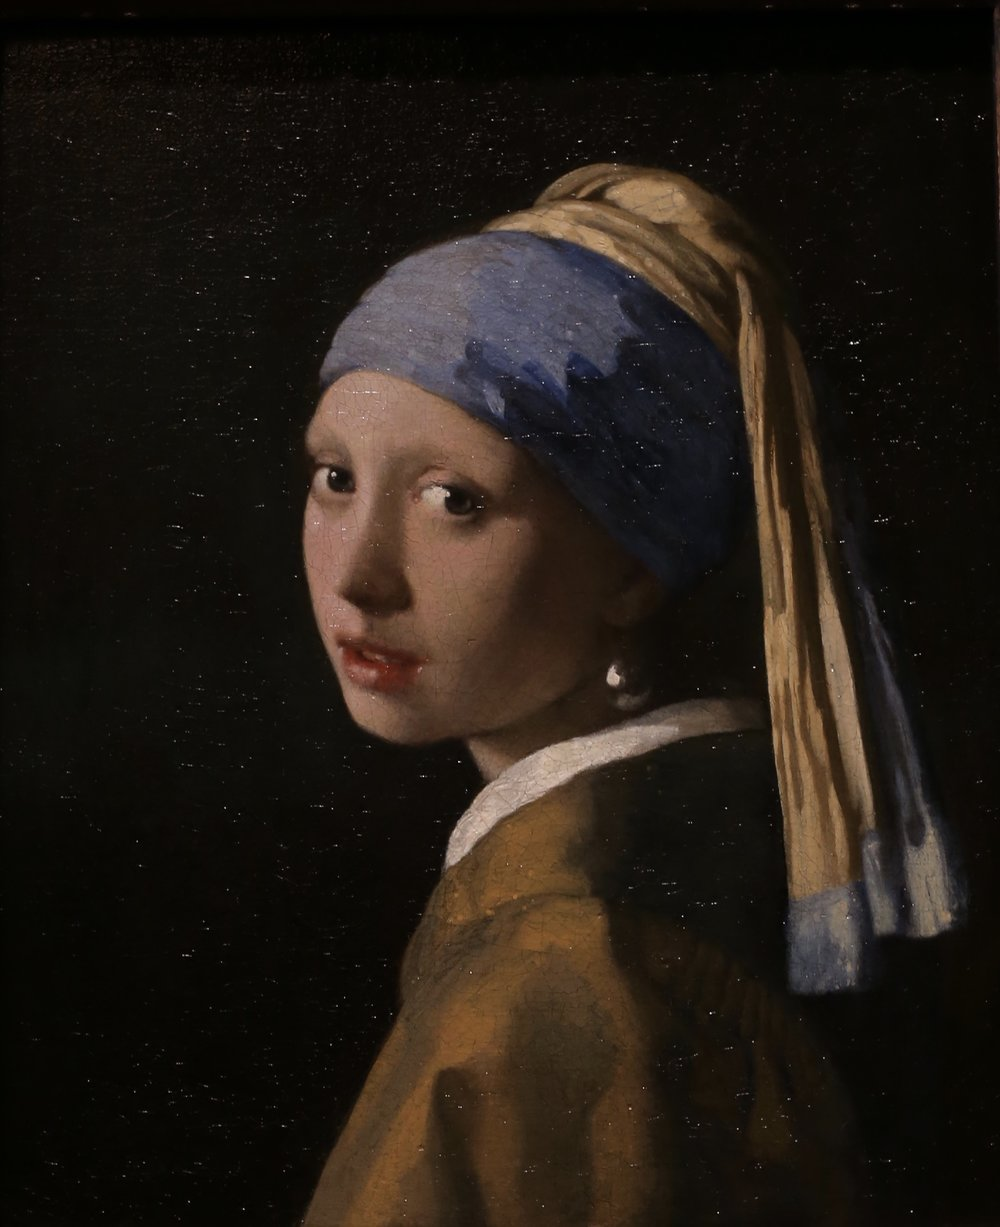 The Girl With the Pearl Earring - by Johannes Vermeer.